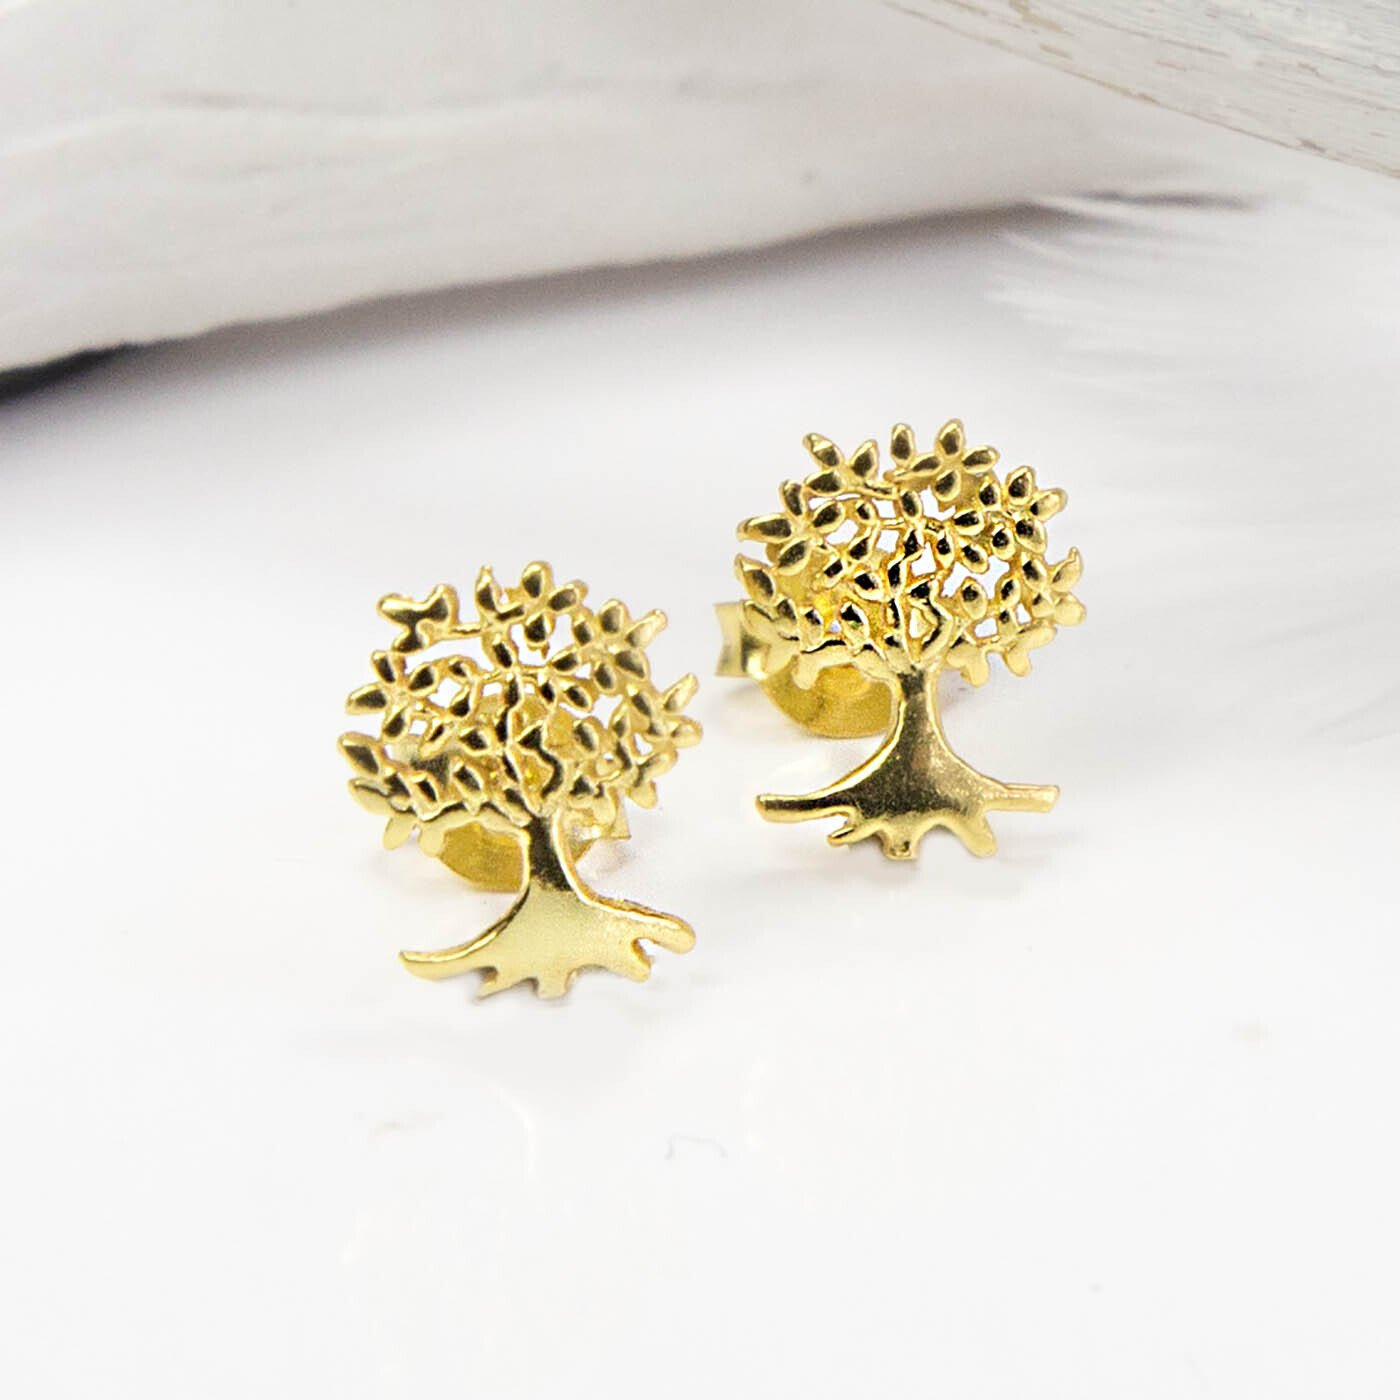 Small Gold Tree studs with white feathers and background